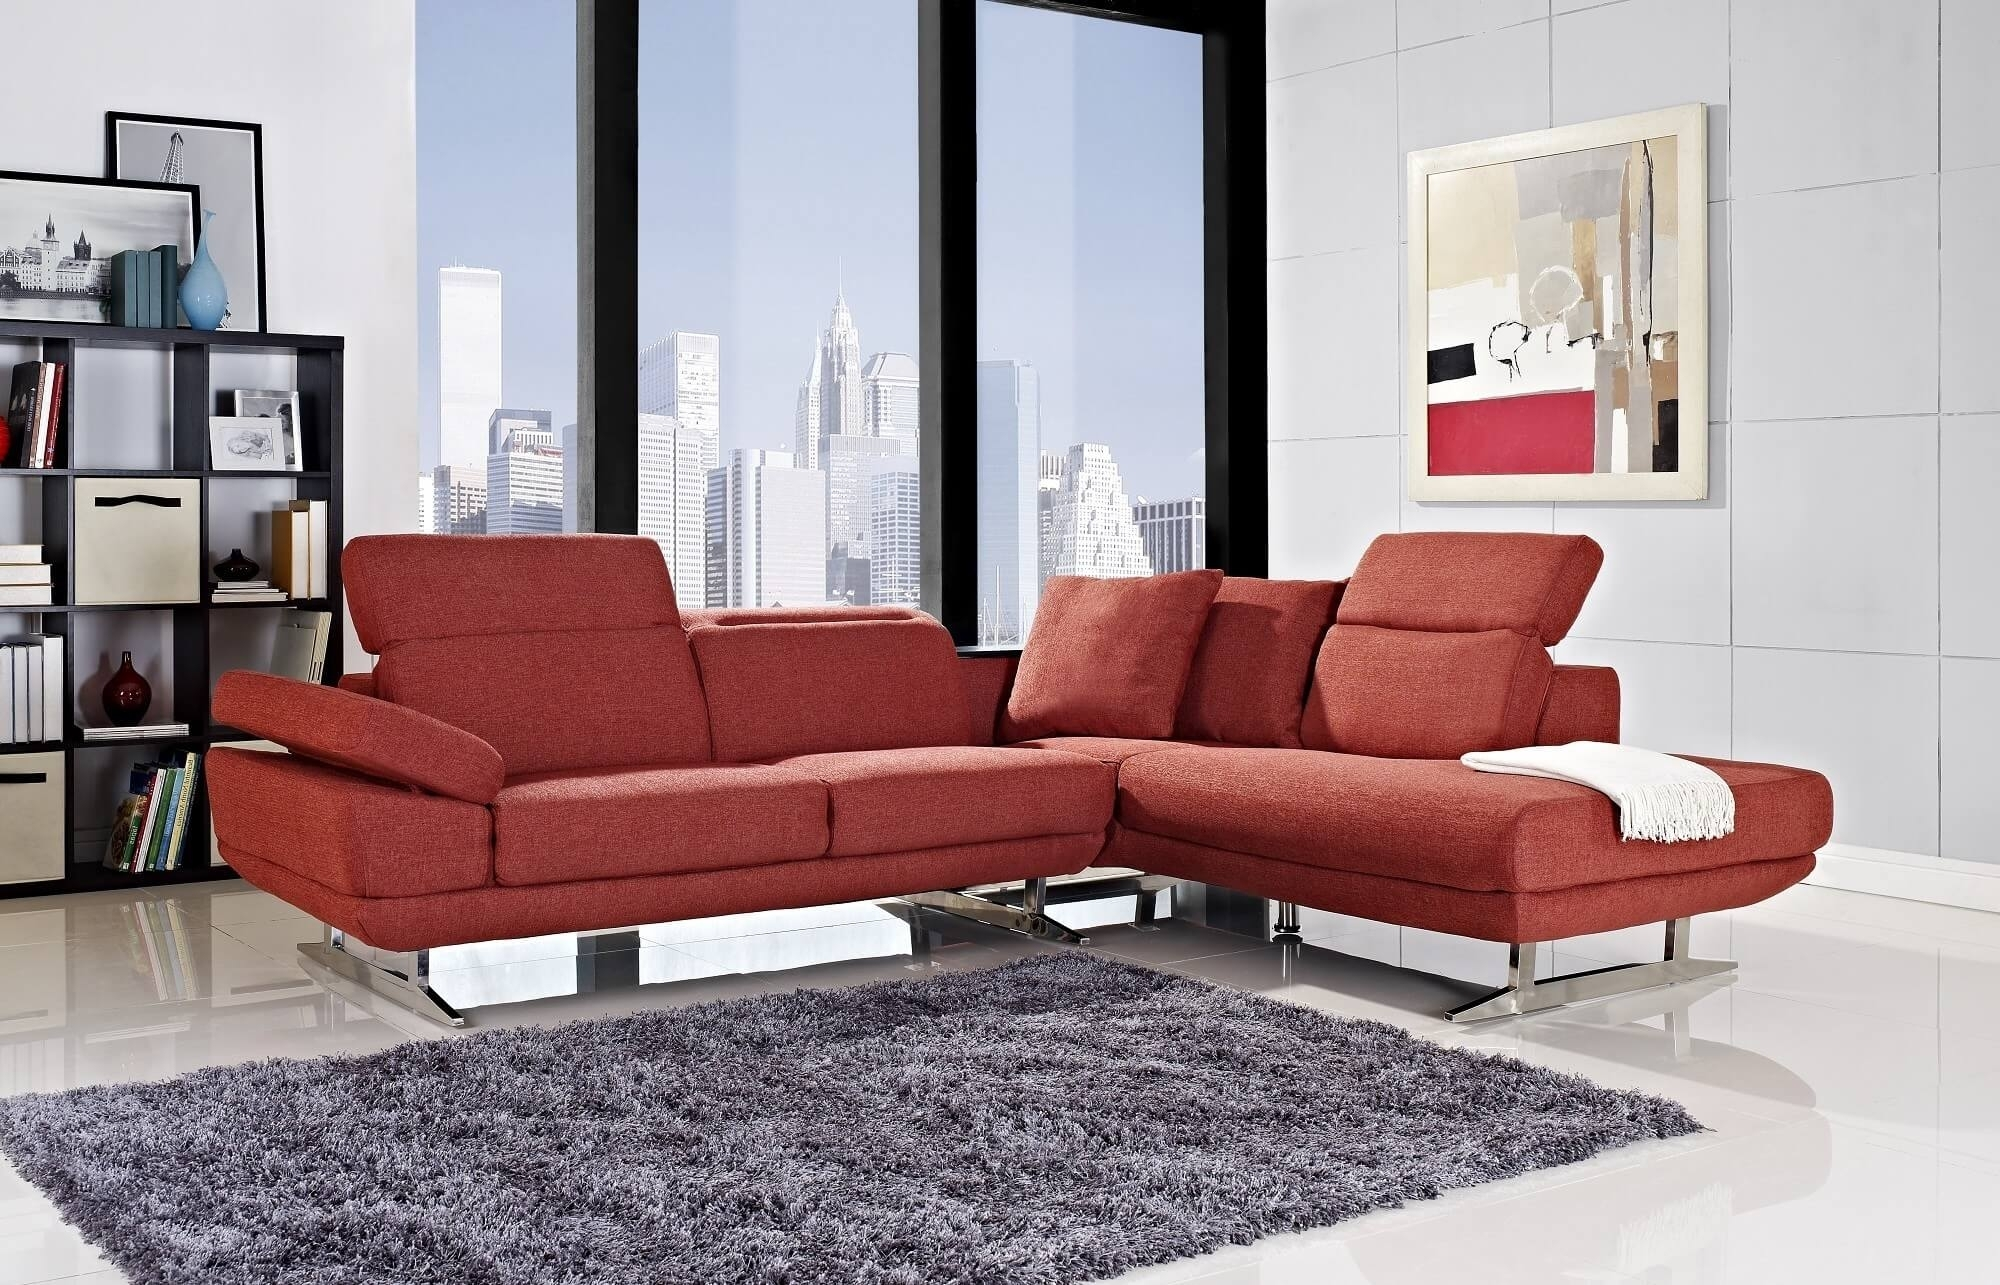 Modern Sectional Sofas Sofa Cgtrader For Small Spaces With Recliners with regard to Vancouver Bc Canada Sectional Sofas (Image 6 of 10)